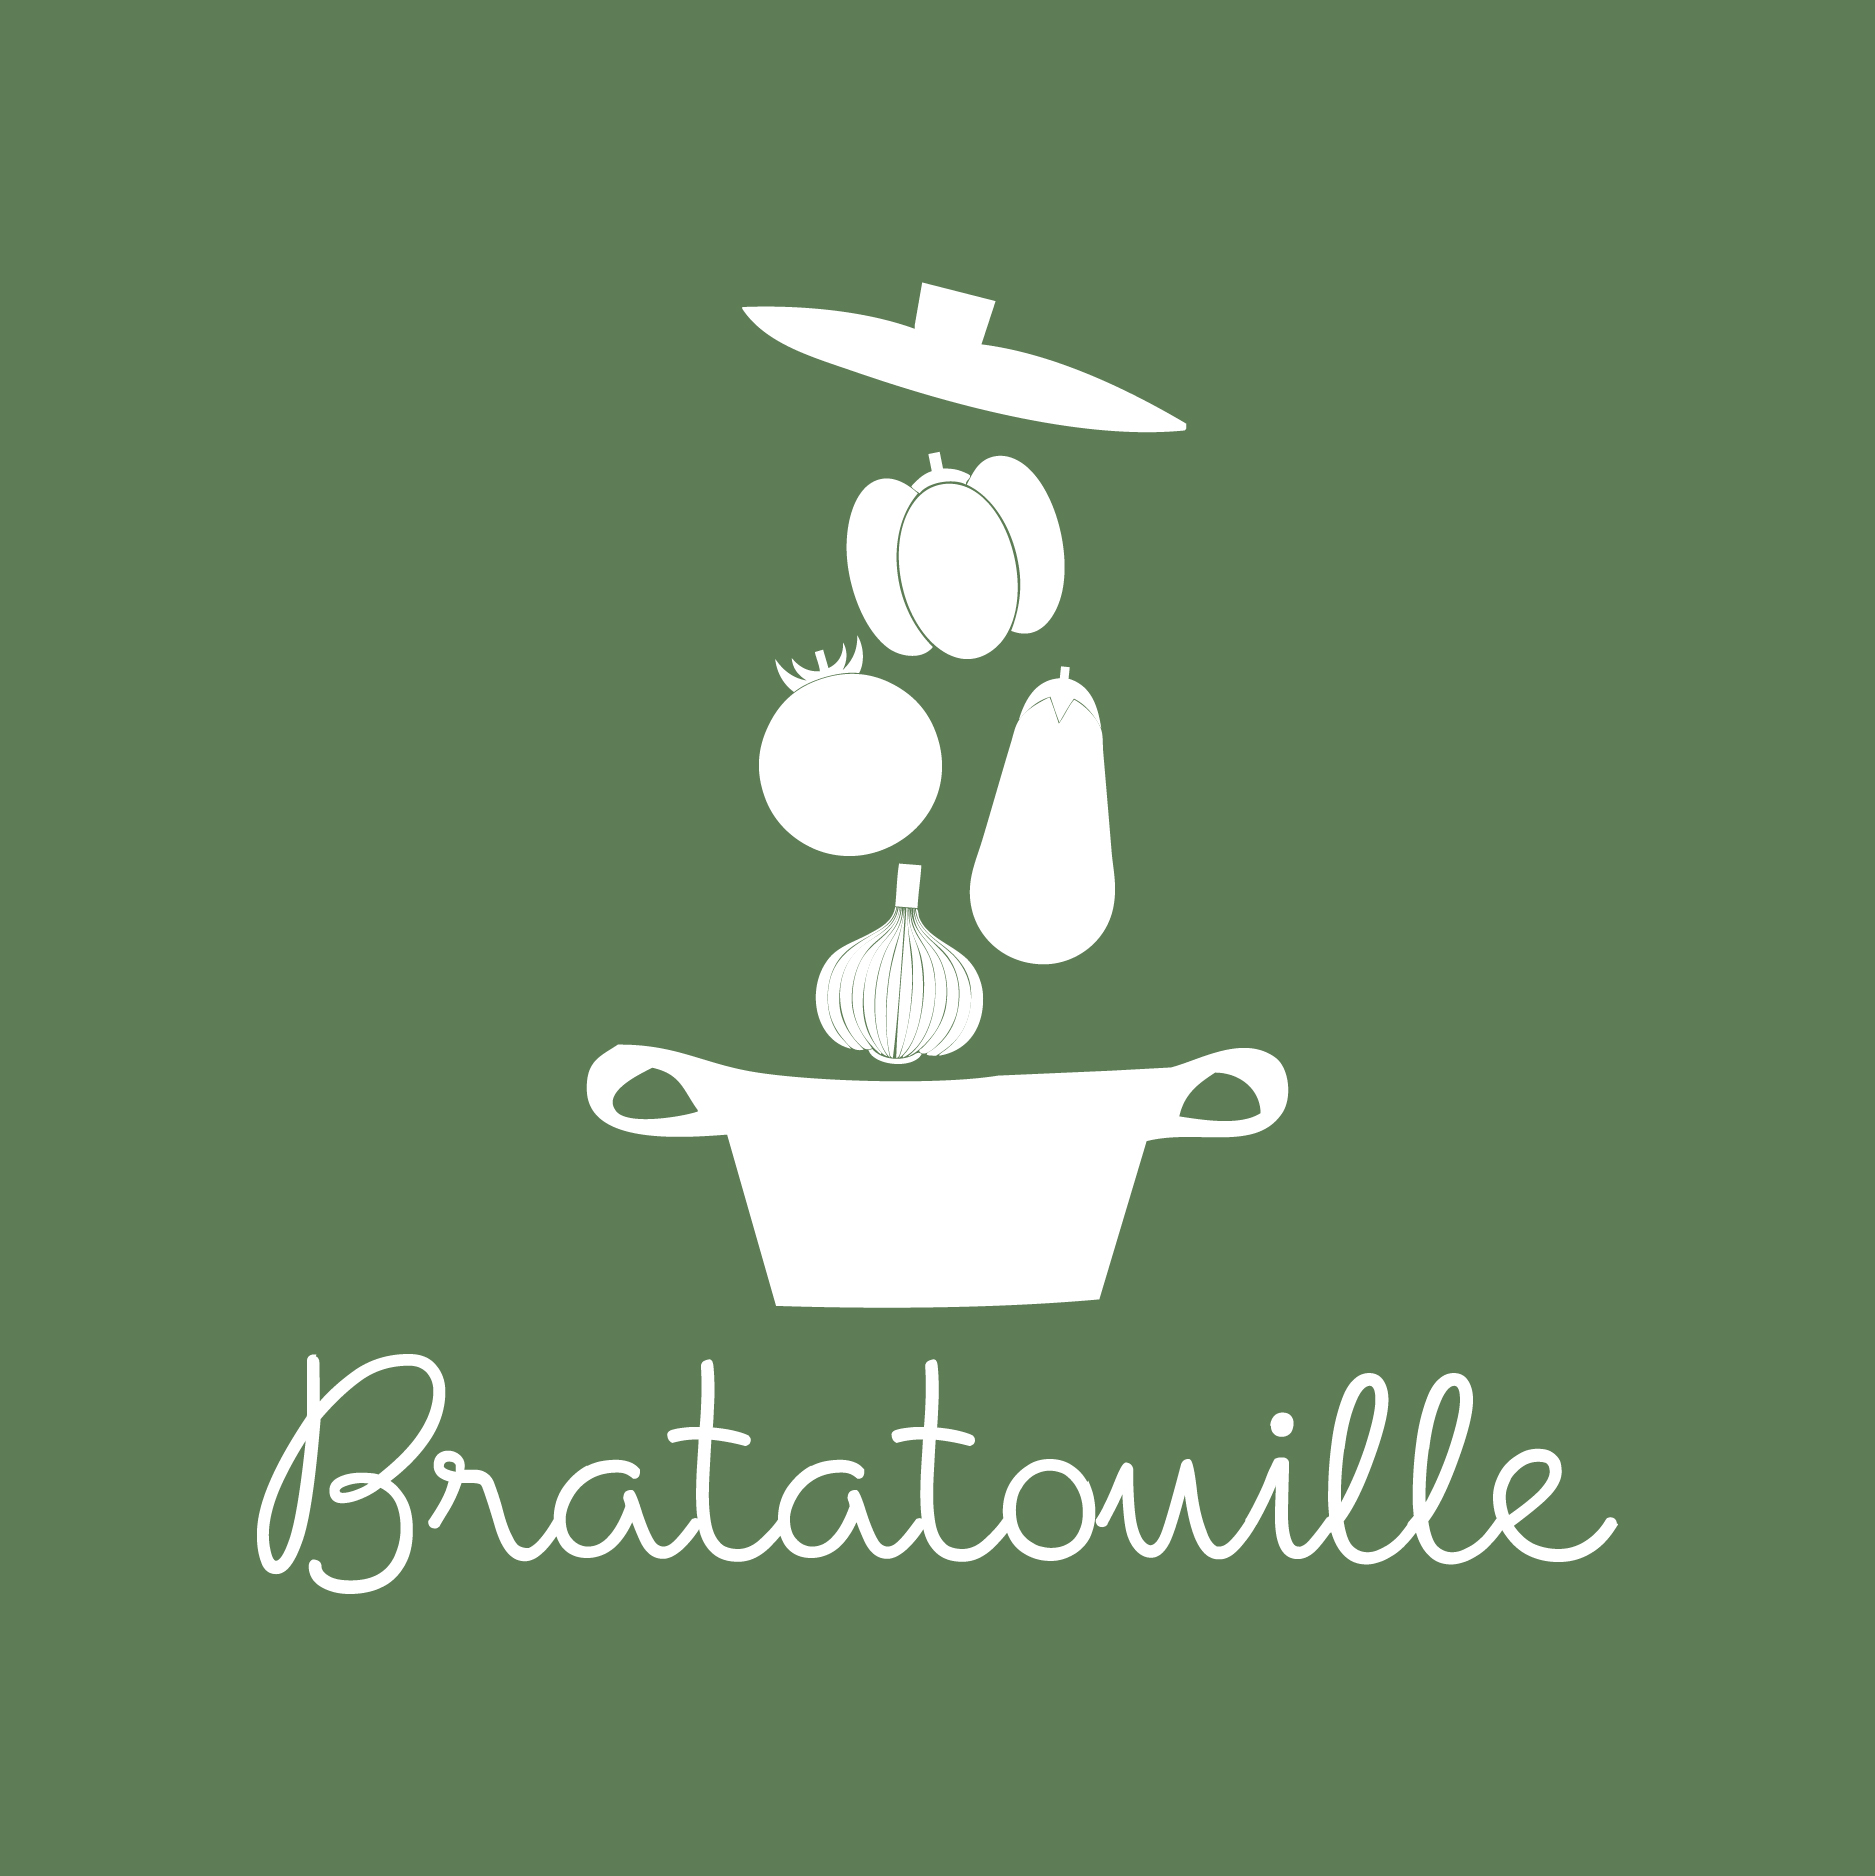 Bratatouille